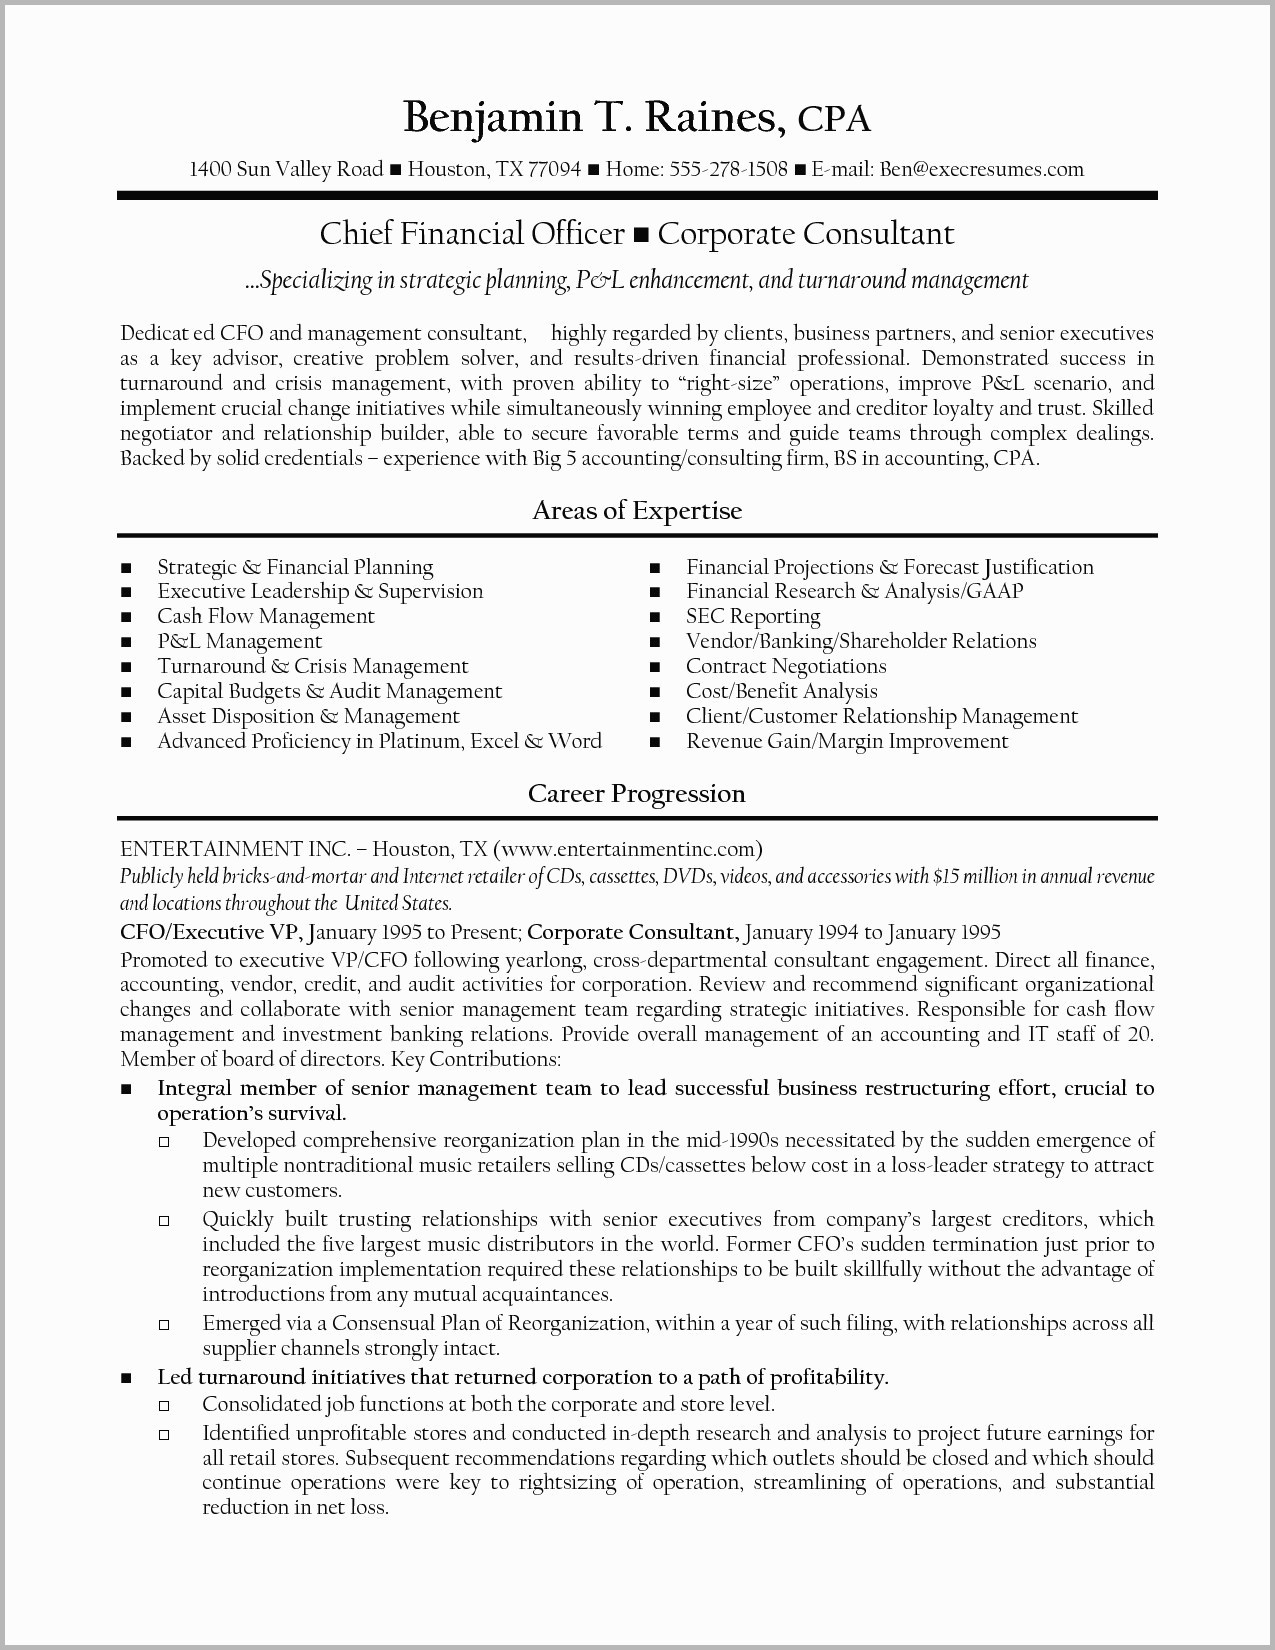 Chief Financial Officer Resume Template - Finance Manager Resume Save Finance Director Resume Examples Cfo